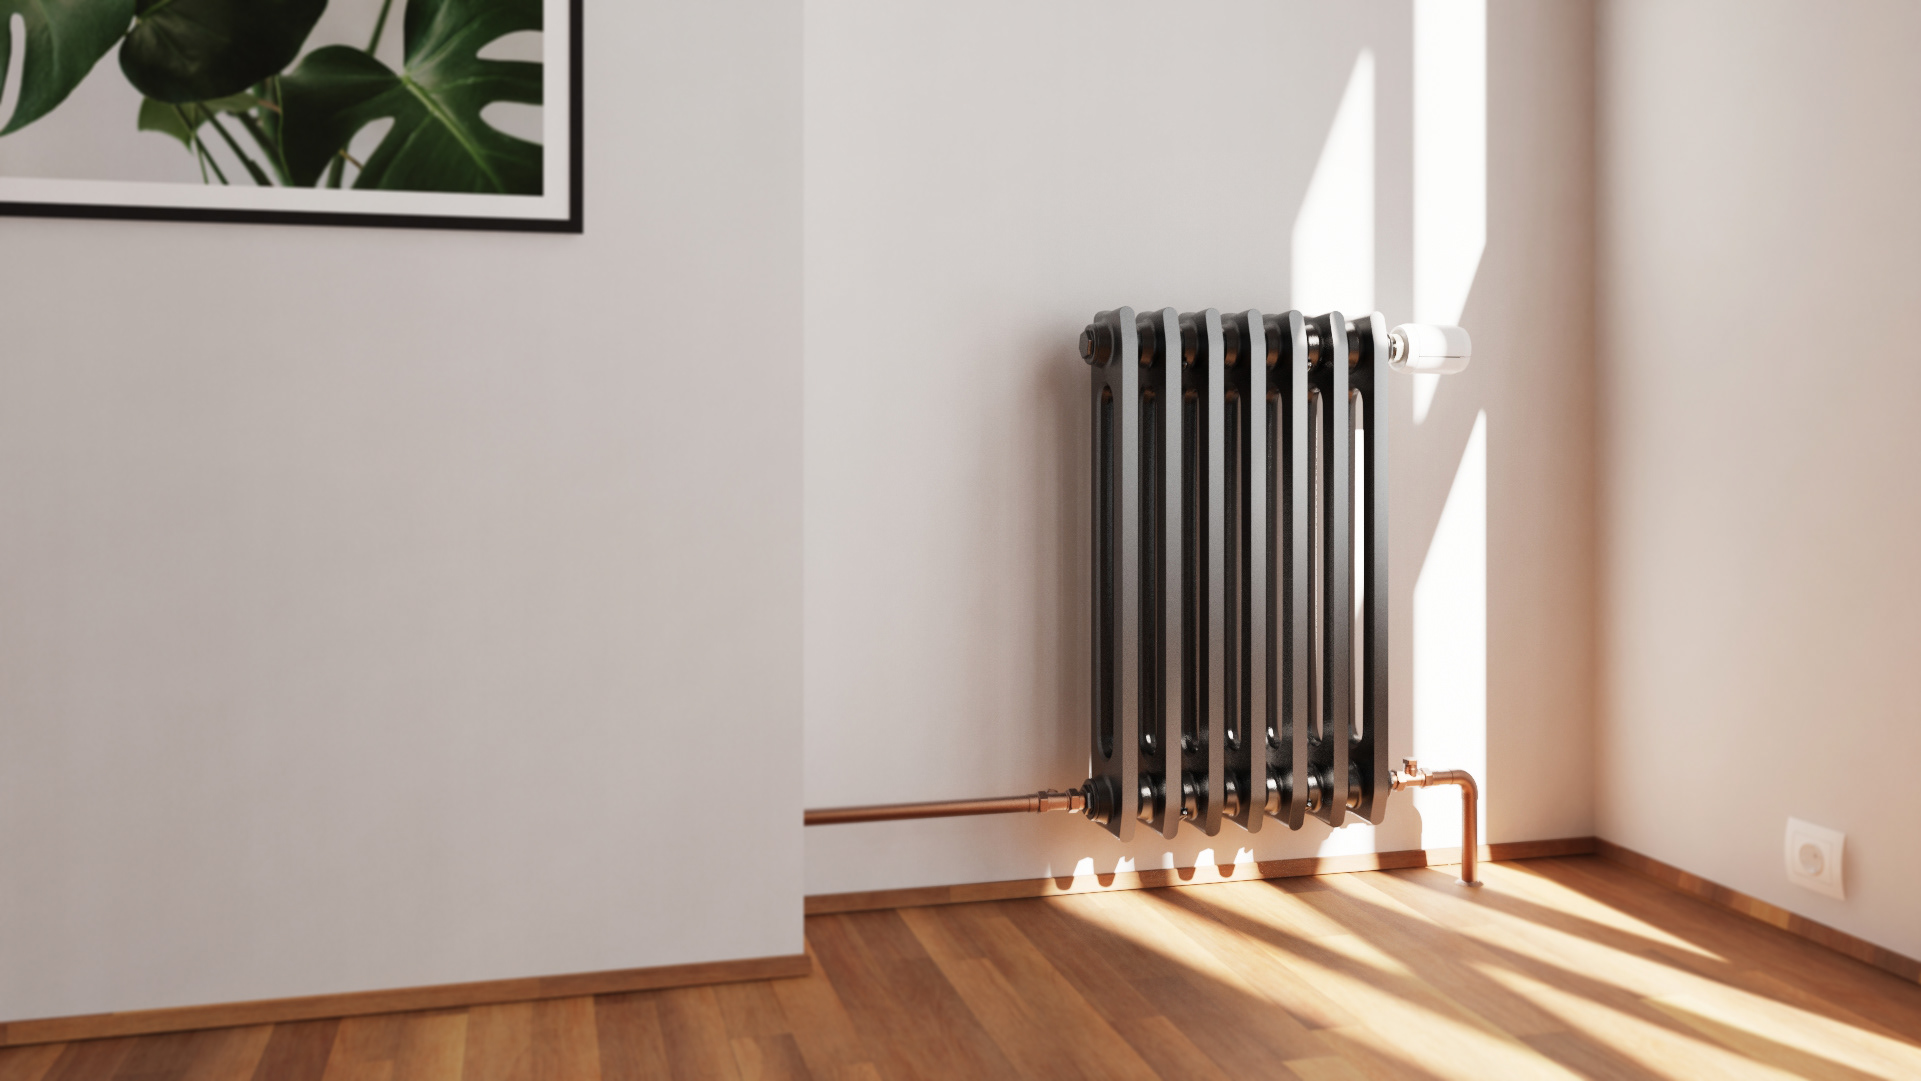 Radiator Projects Photos Videos Logos Illustrations And Branding On Behance